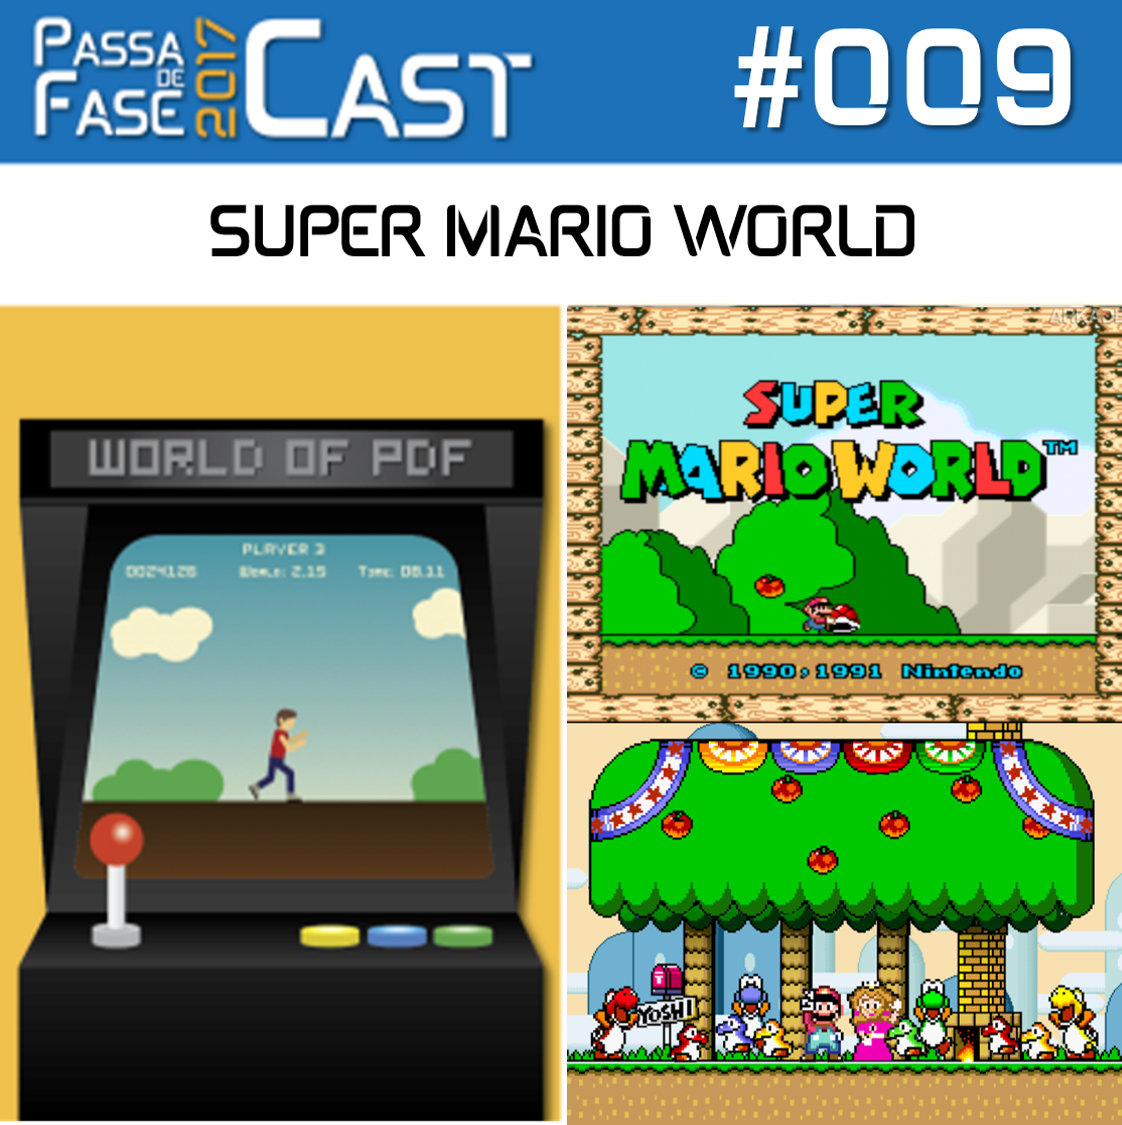 Passa de Fase Cast 2017 #009 | Super Mario World – Super Nintendo